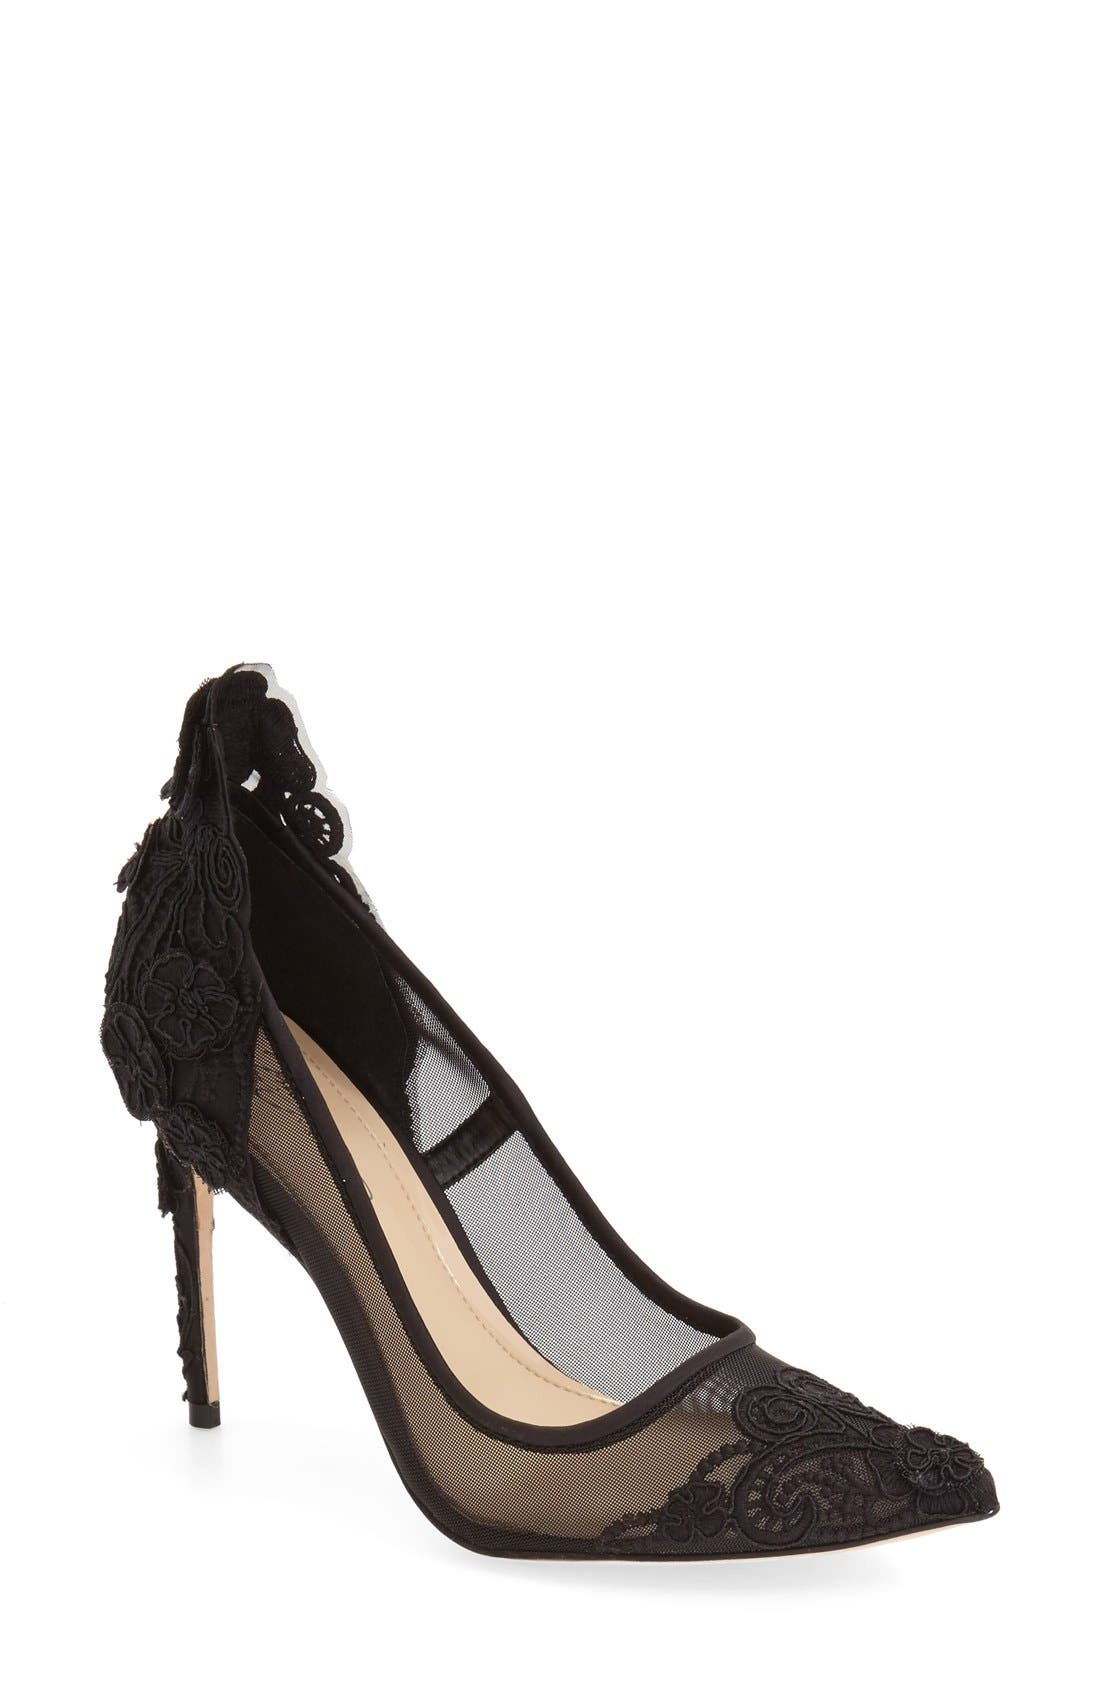 IMAGINE BY VINCE CAMUTO, 'Ophelia' Pointy Toe Pump, Main thumbnail 1, color, 001